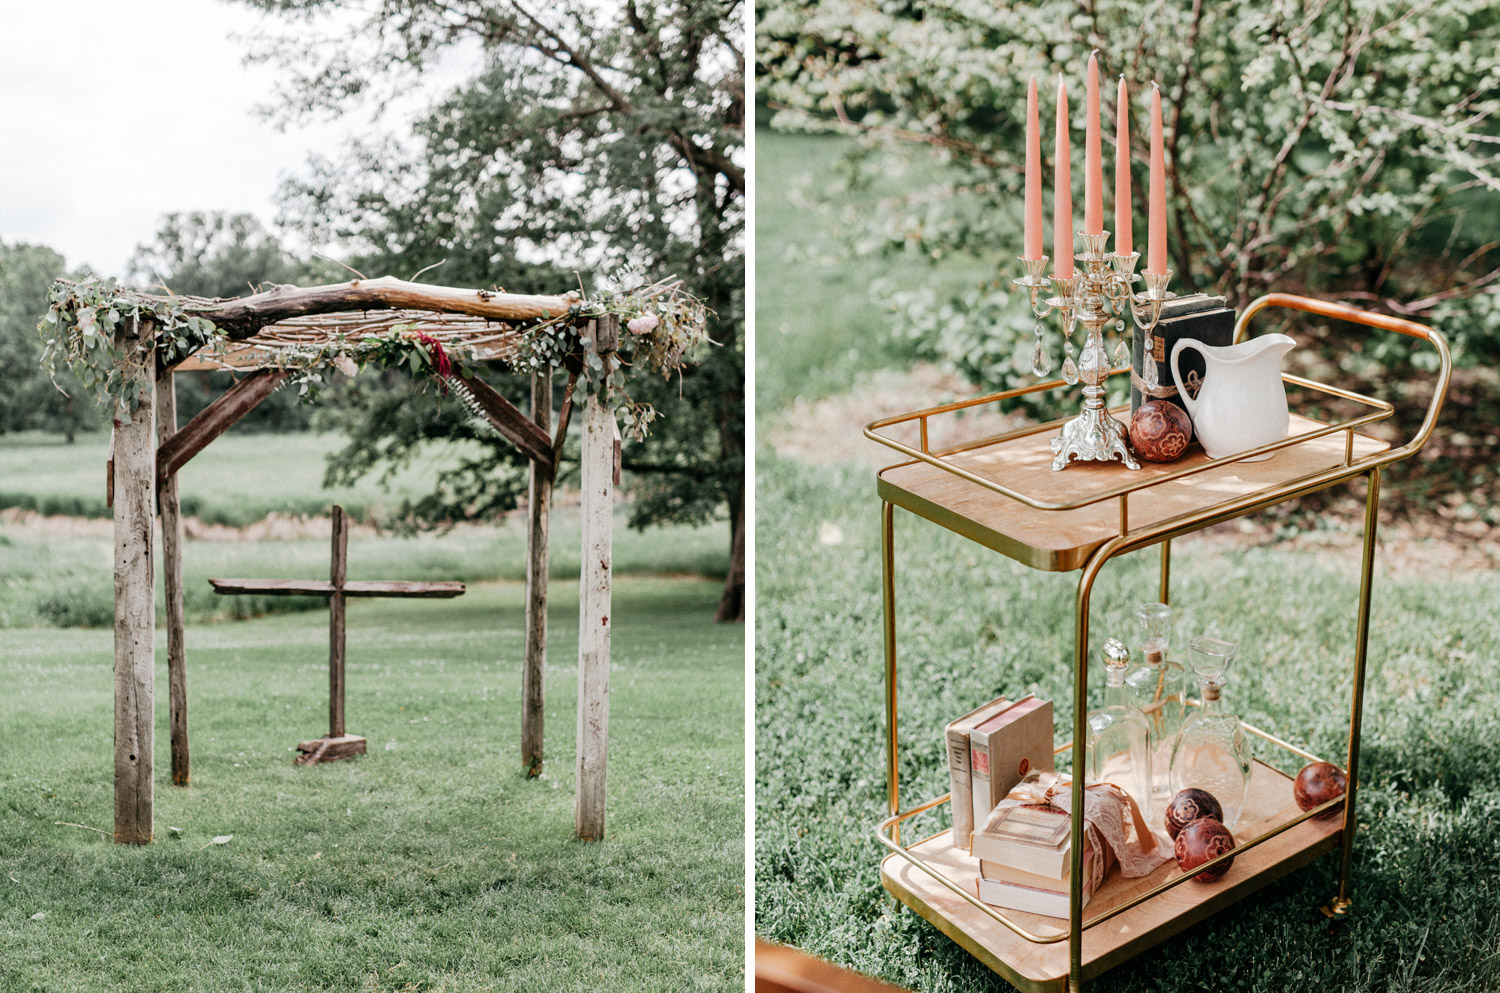 details of wedding decor from wedding at rustic oaks by geneoh photography